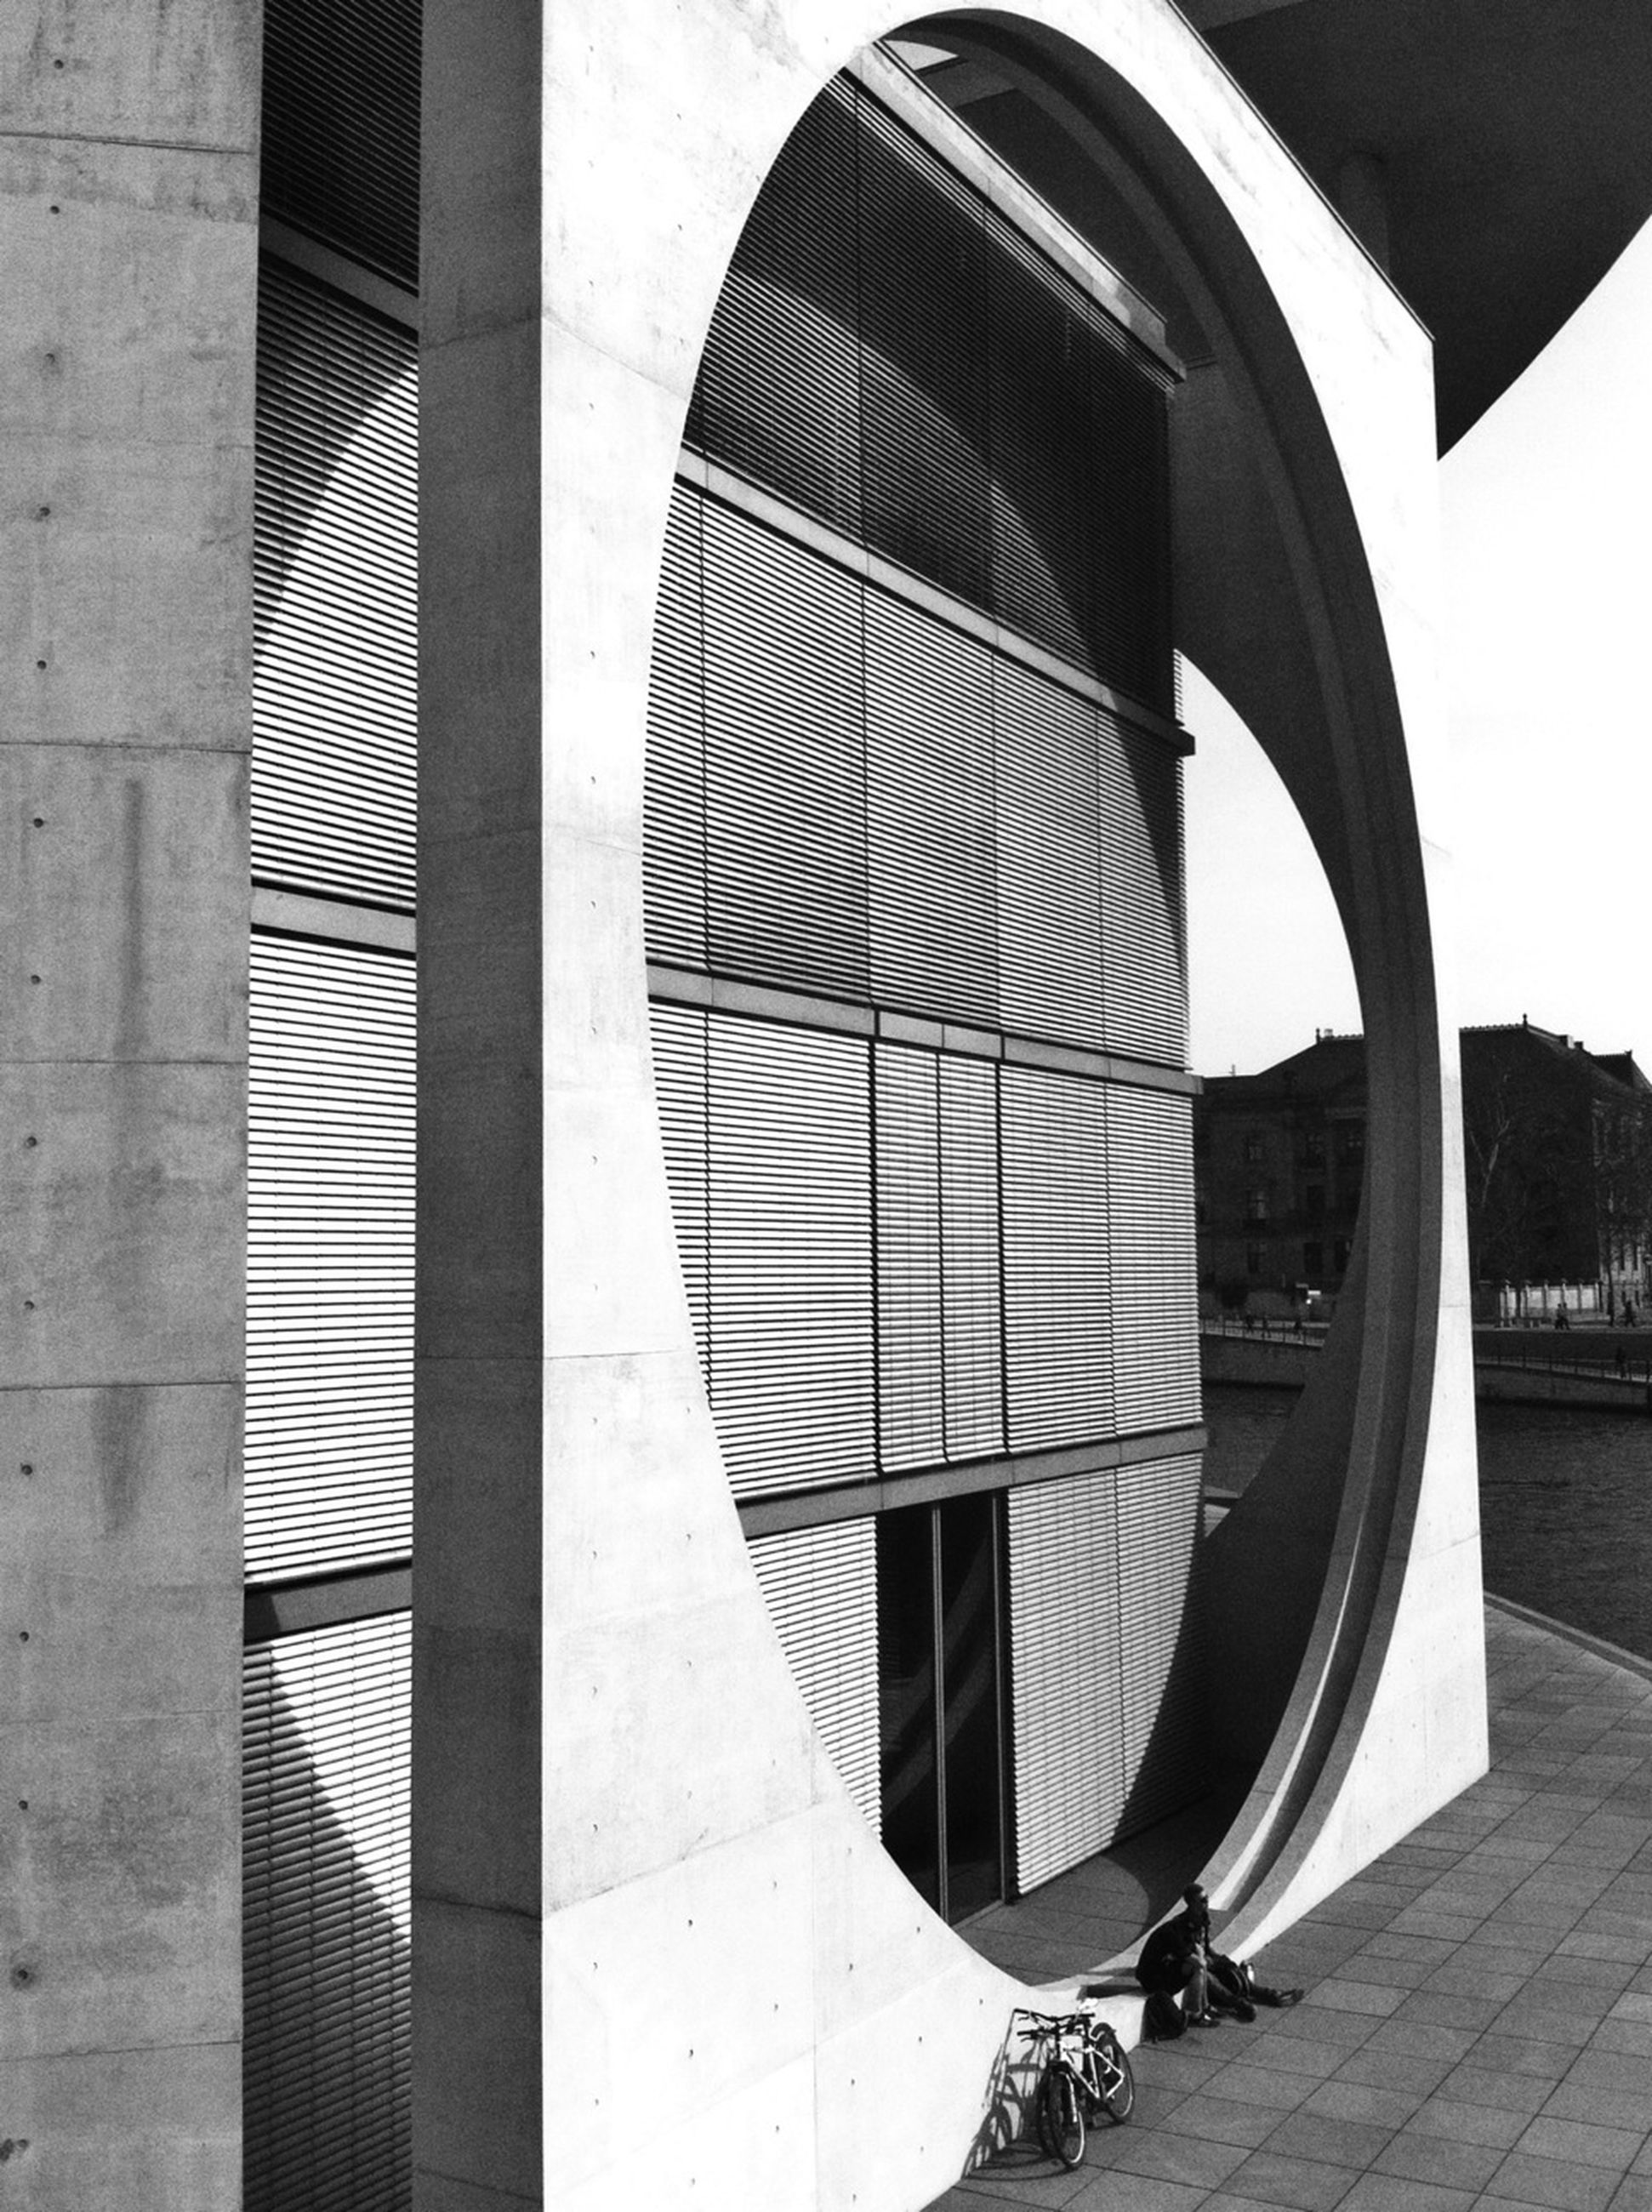 architecture, built structure, building exterior, city, modern, pattern, reflection, day, building, sky, no people, outdoors, arch, sunlight, railing, close-up, circle, window, shape, protection